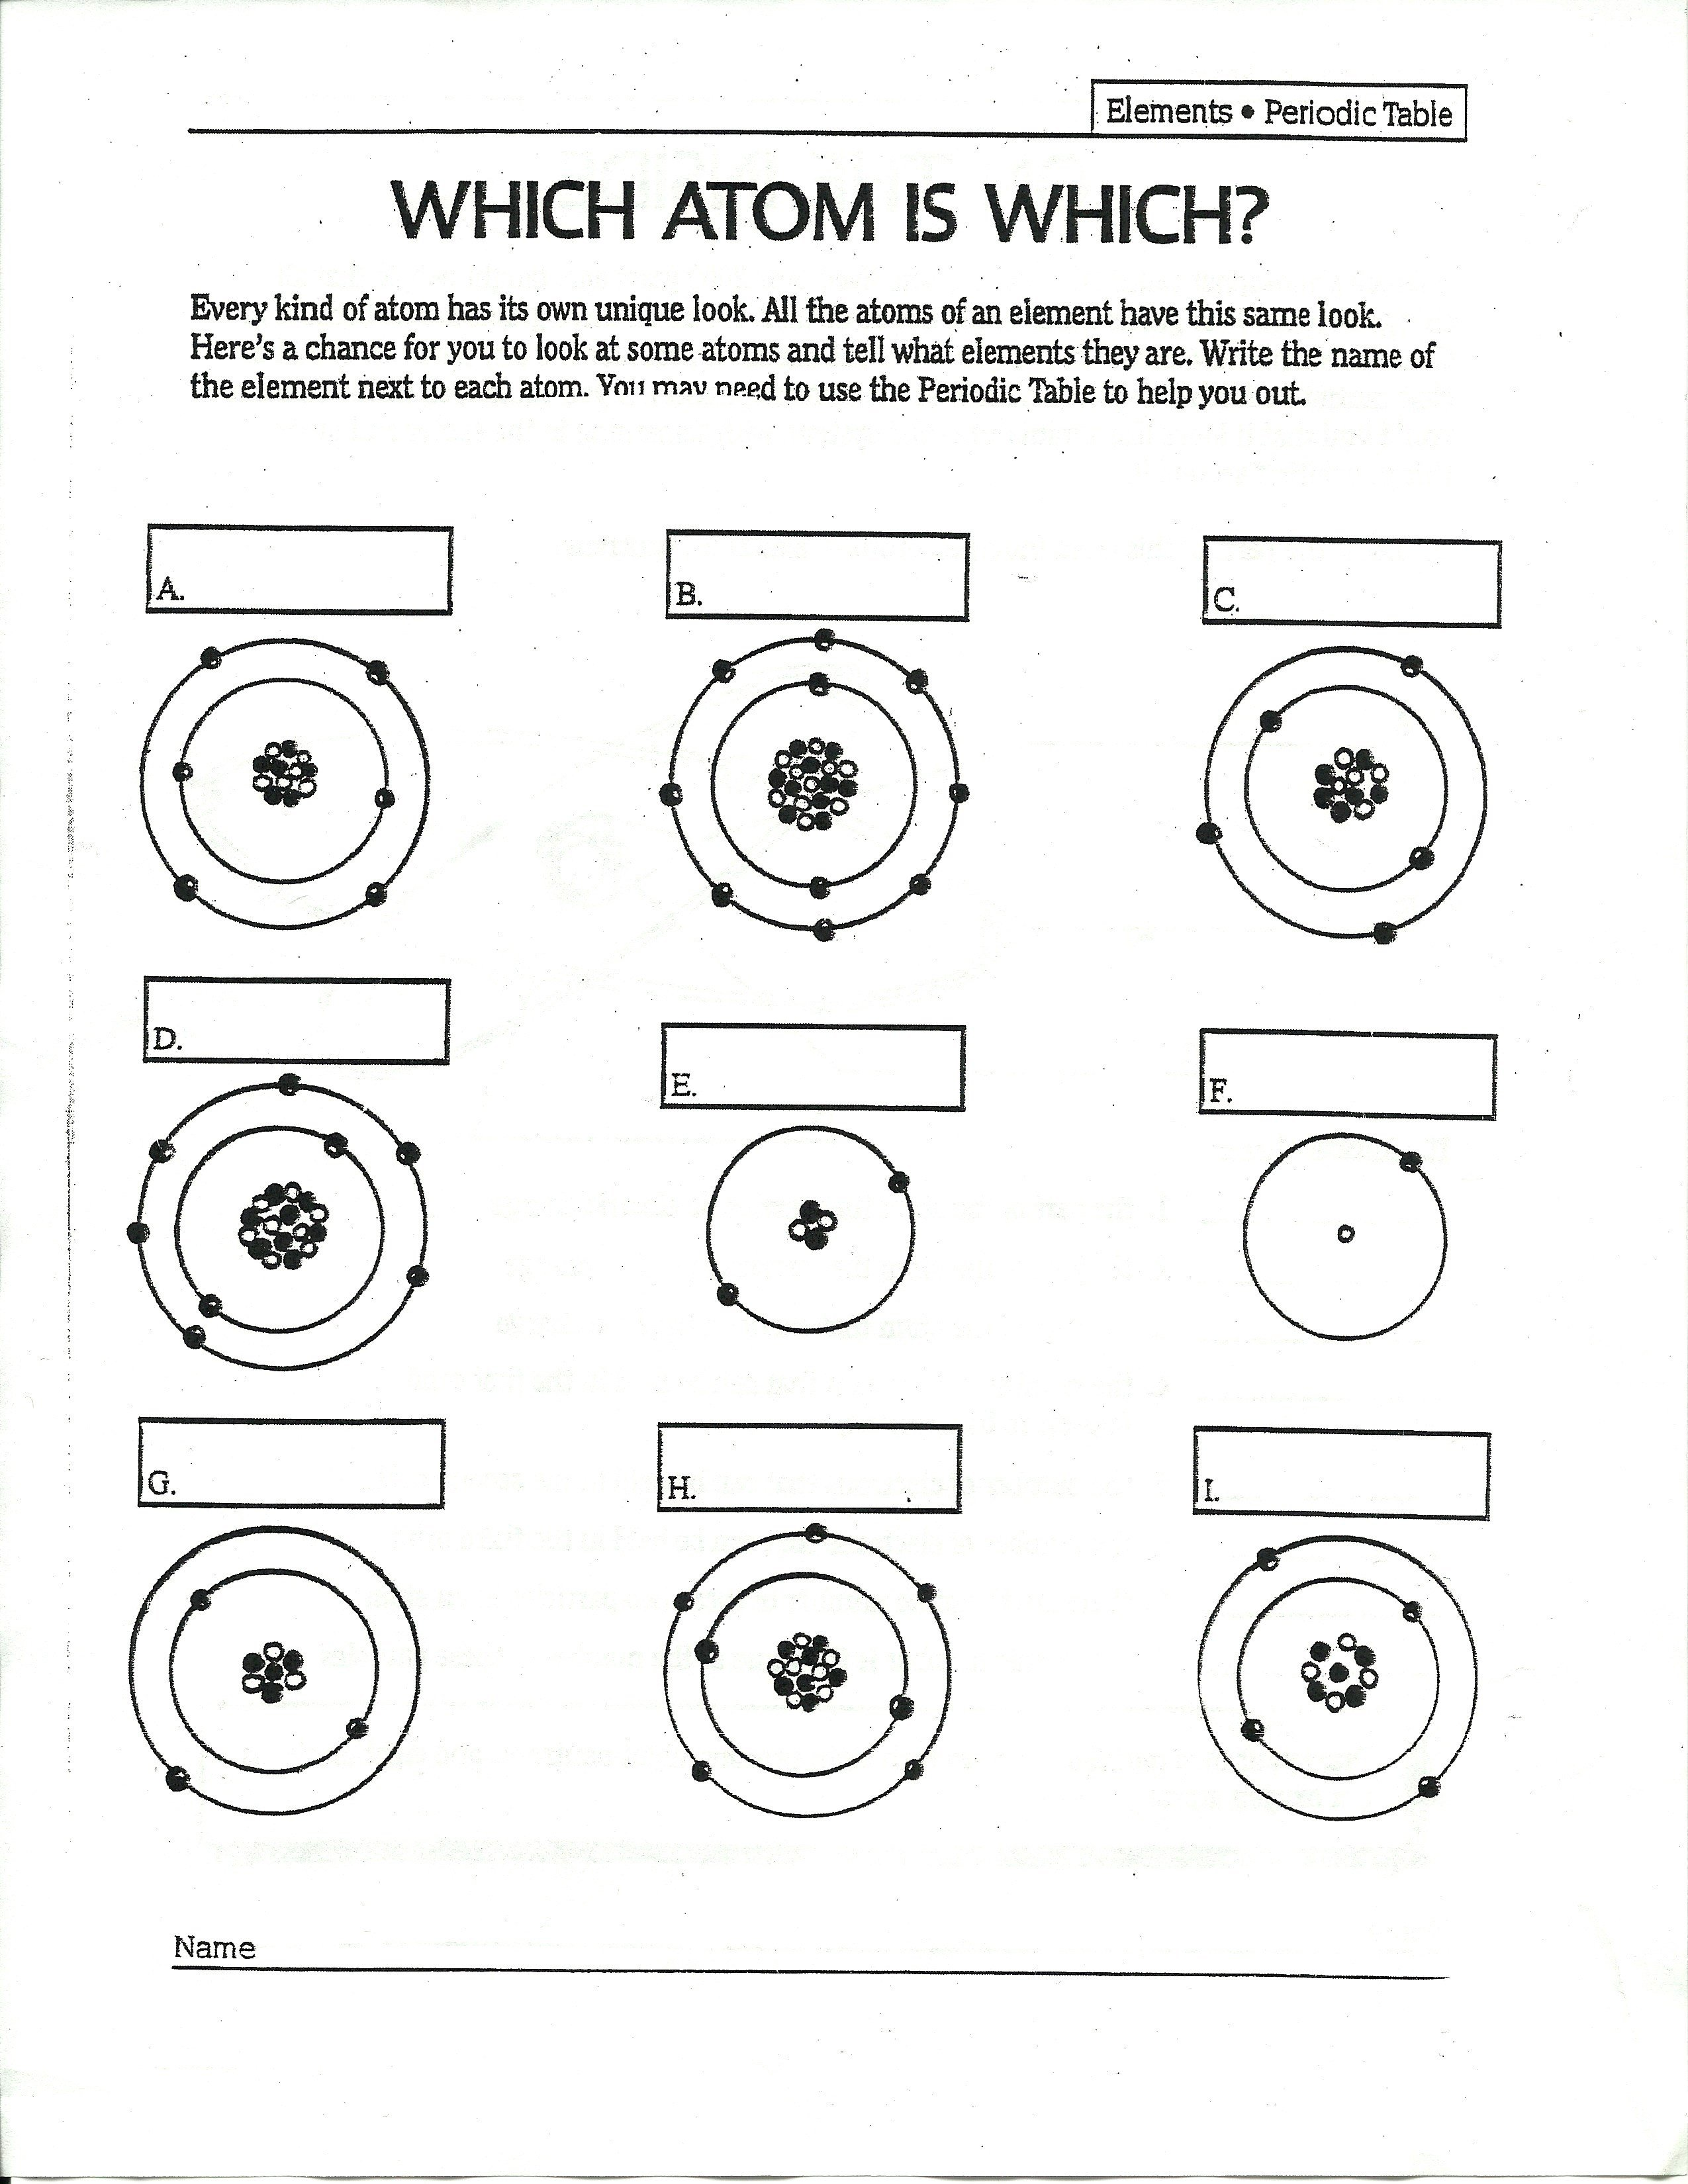 37 Structure Of The Atom Worksheet, 25 Best Ideas About Atomic